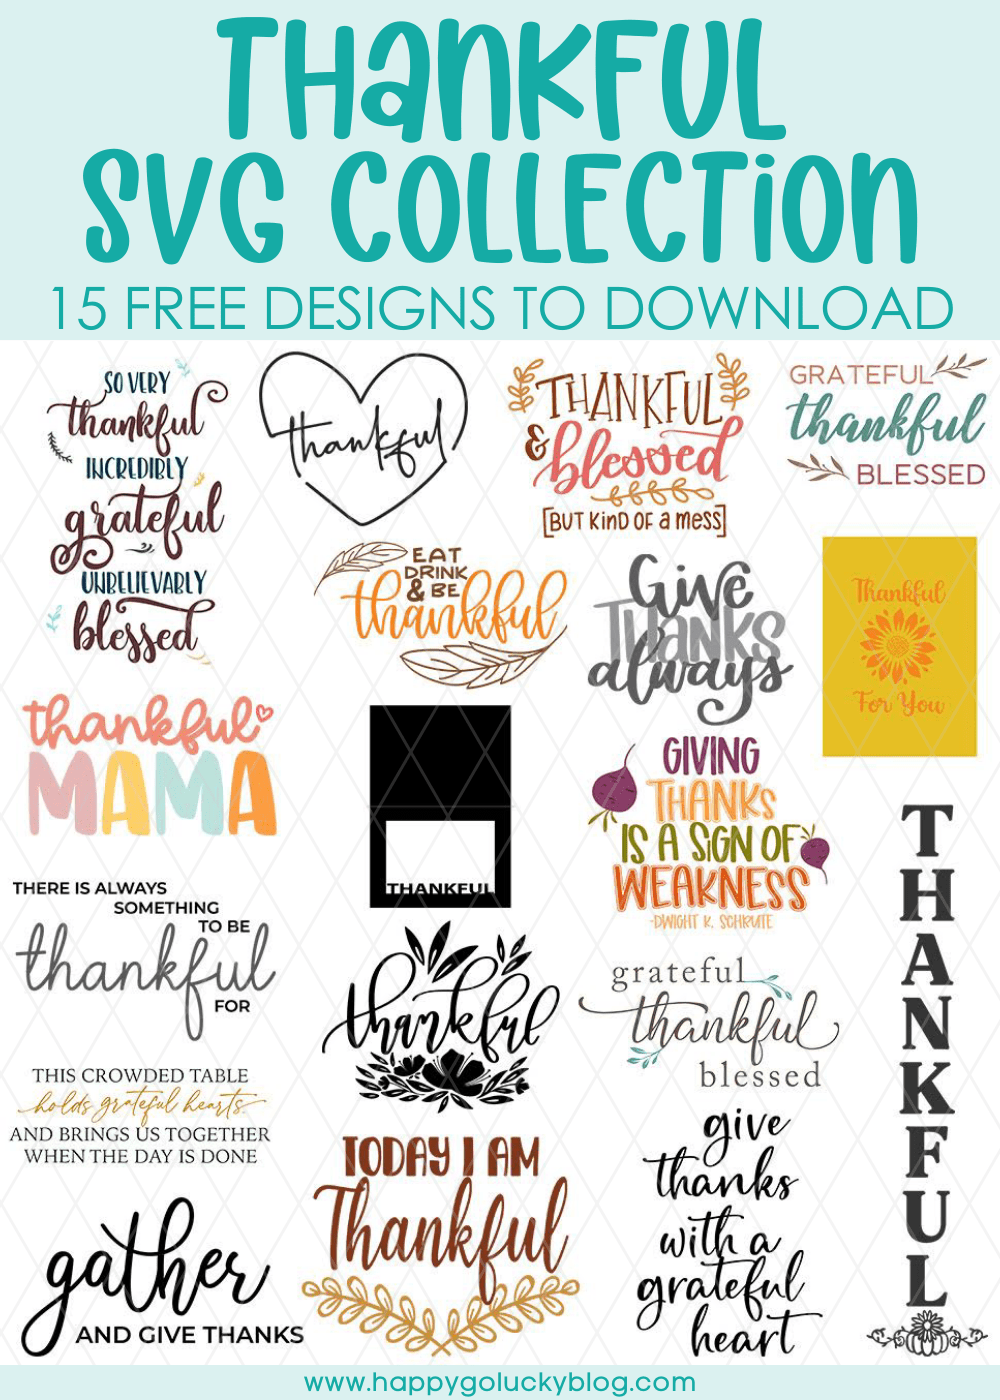 Thankful Svg : thankful, Thankful, Collection, Vertical, Happy-Go-Lucky